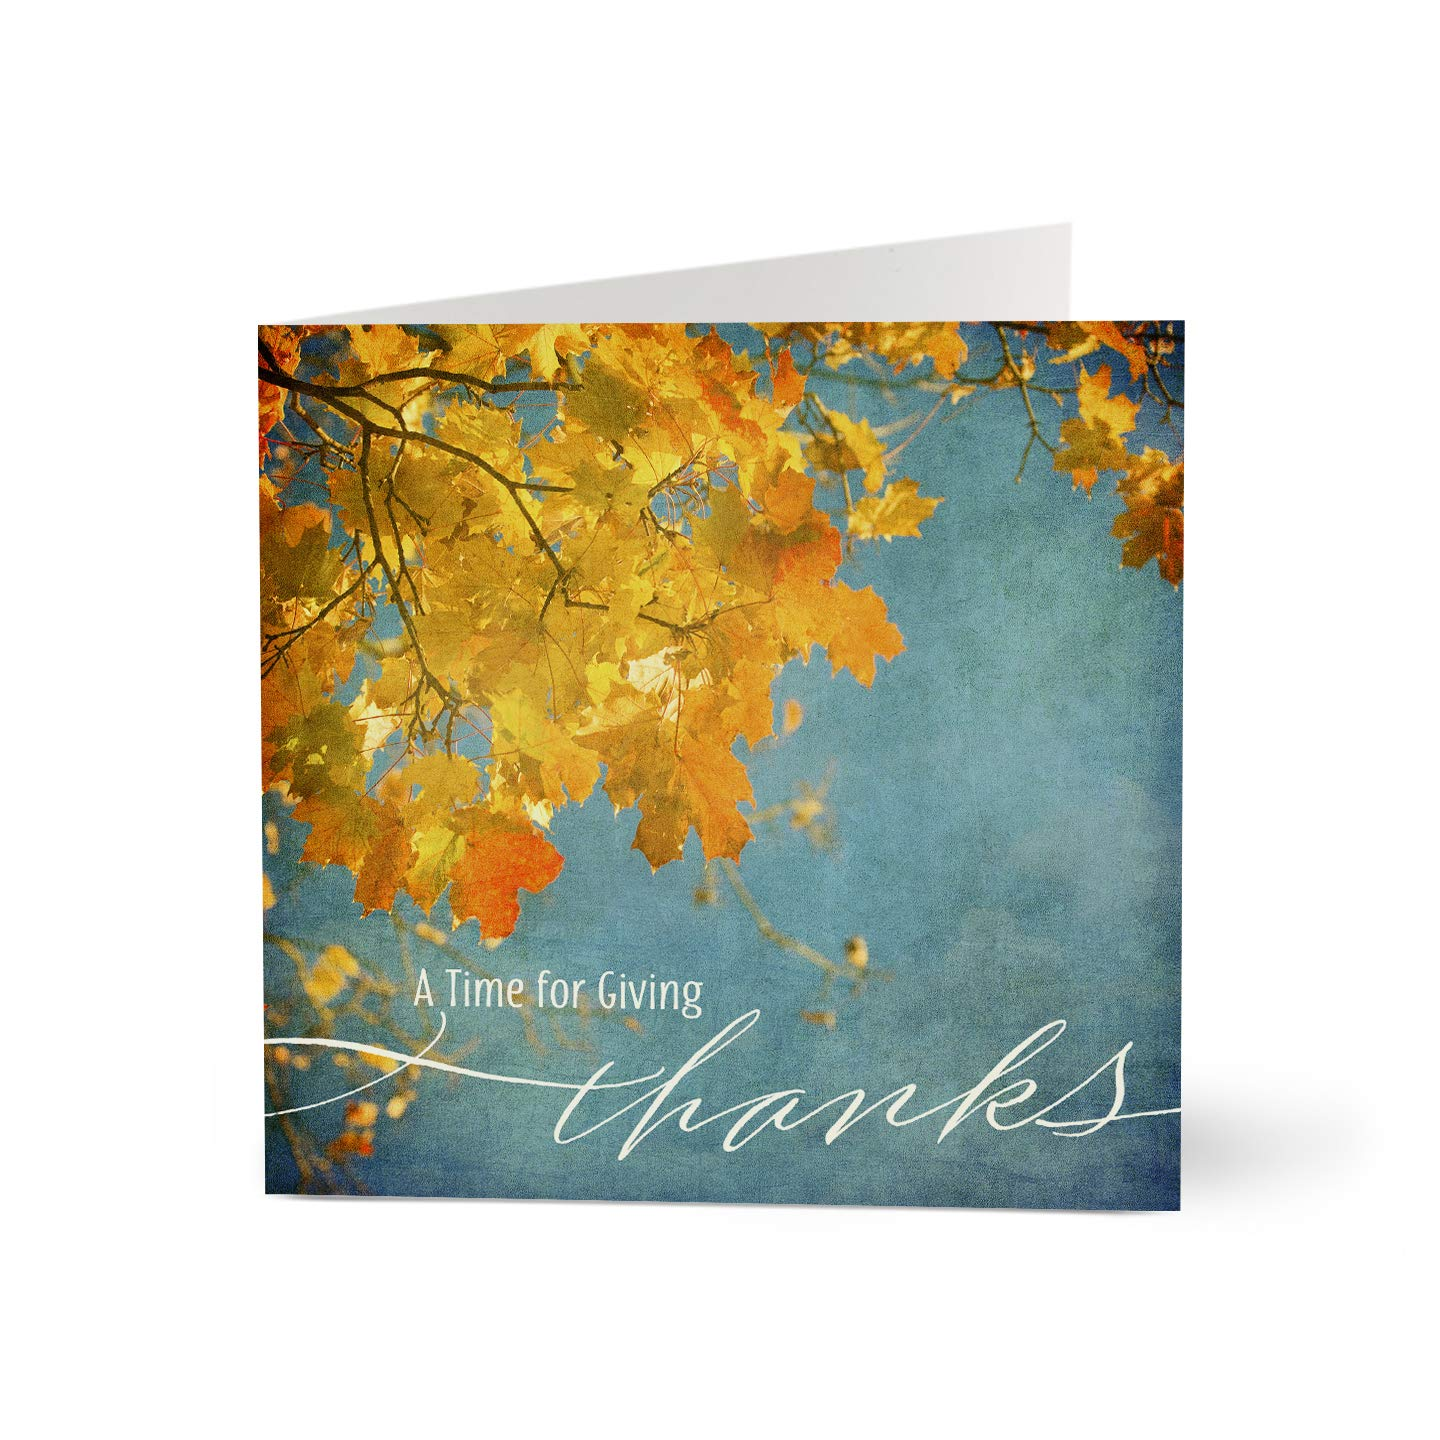 Hallmark Business Thanksgiving Cards for Customers (Thanksgiving Fall Leaves) (Pack of 25 Greeting Cards) by Hallmark Business Connections